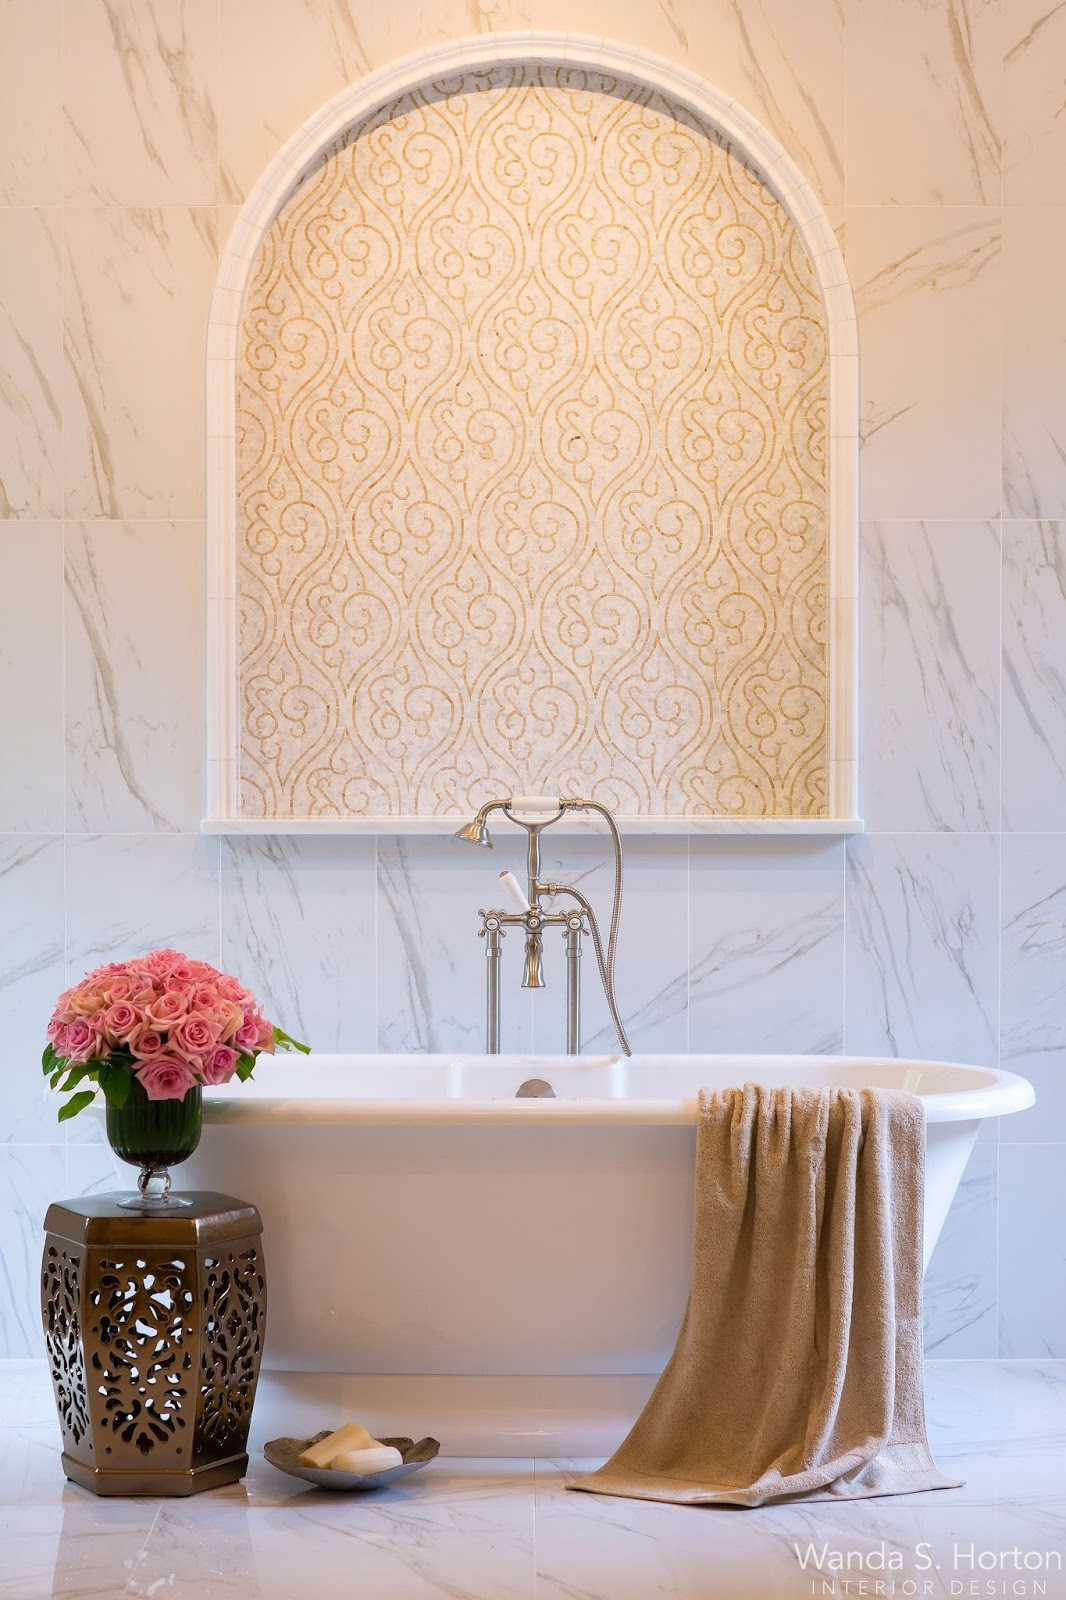 Soft Elegant Design Details Made For A Beautiful Bath Escape Our Clients